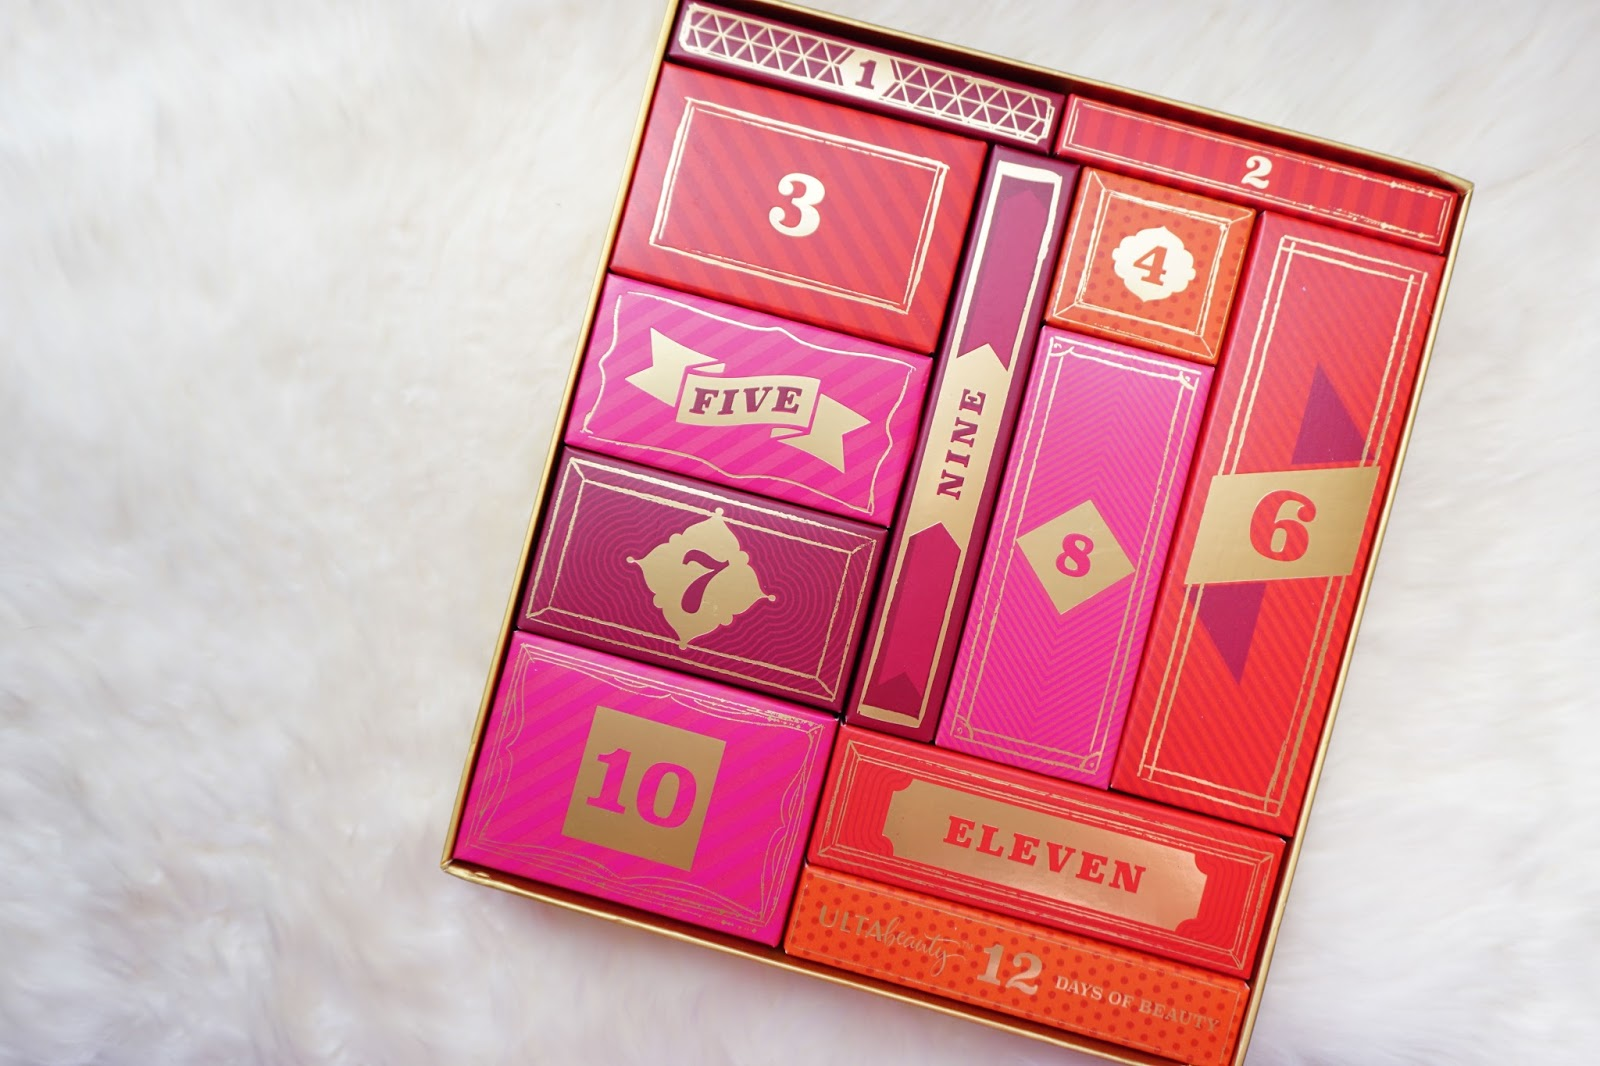 fivetwo beauty: 2016 HOLIDAY Beauty Gift no. 5 - ULTA Beauty ...